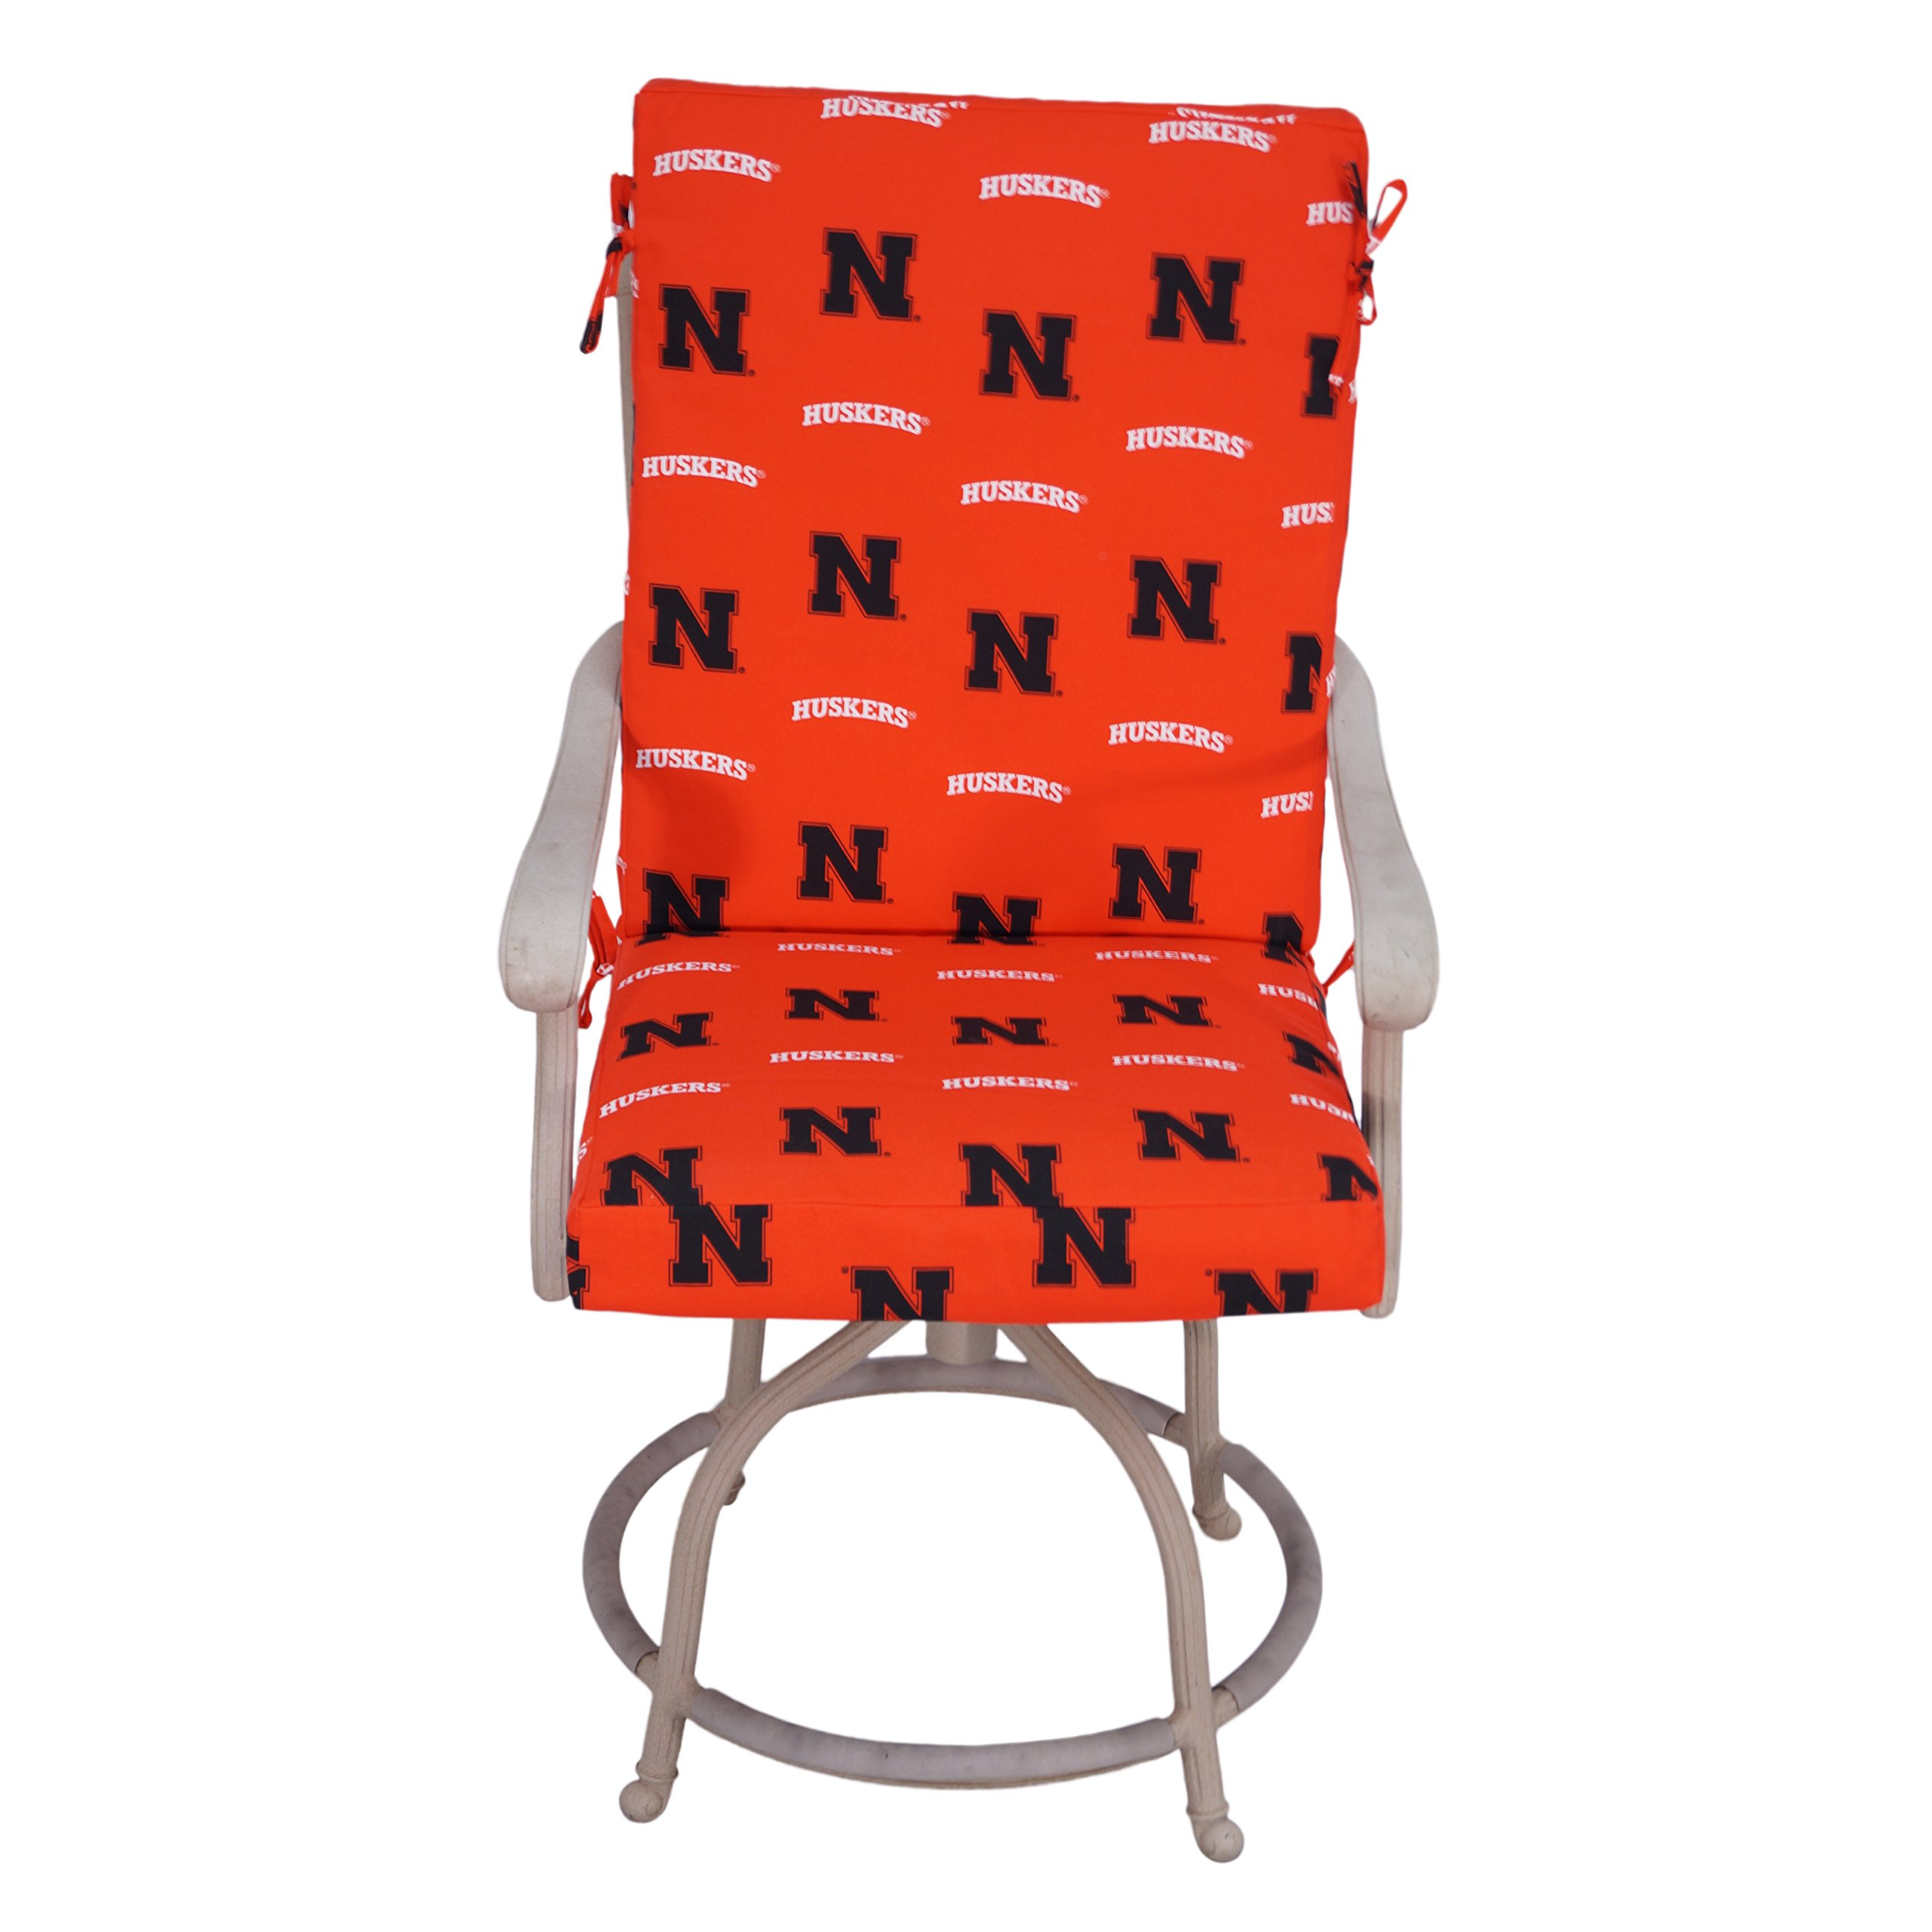 College Covers Nebraska Cornhuskers 2pc Chair Cushion by College Covers